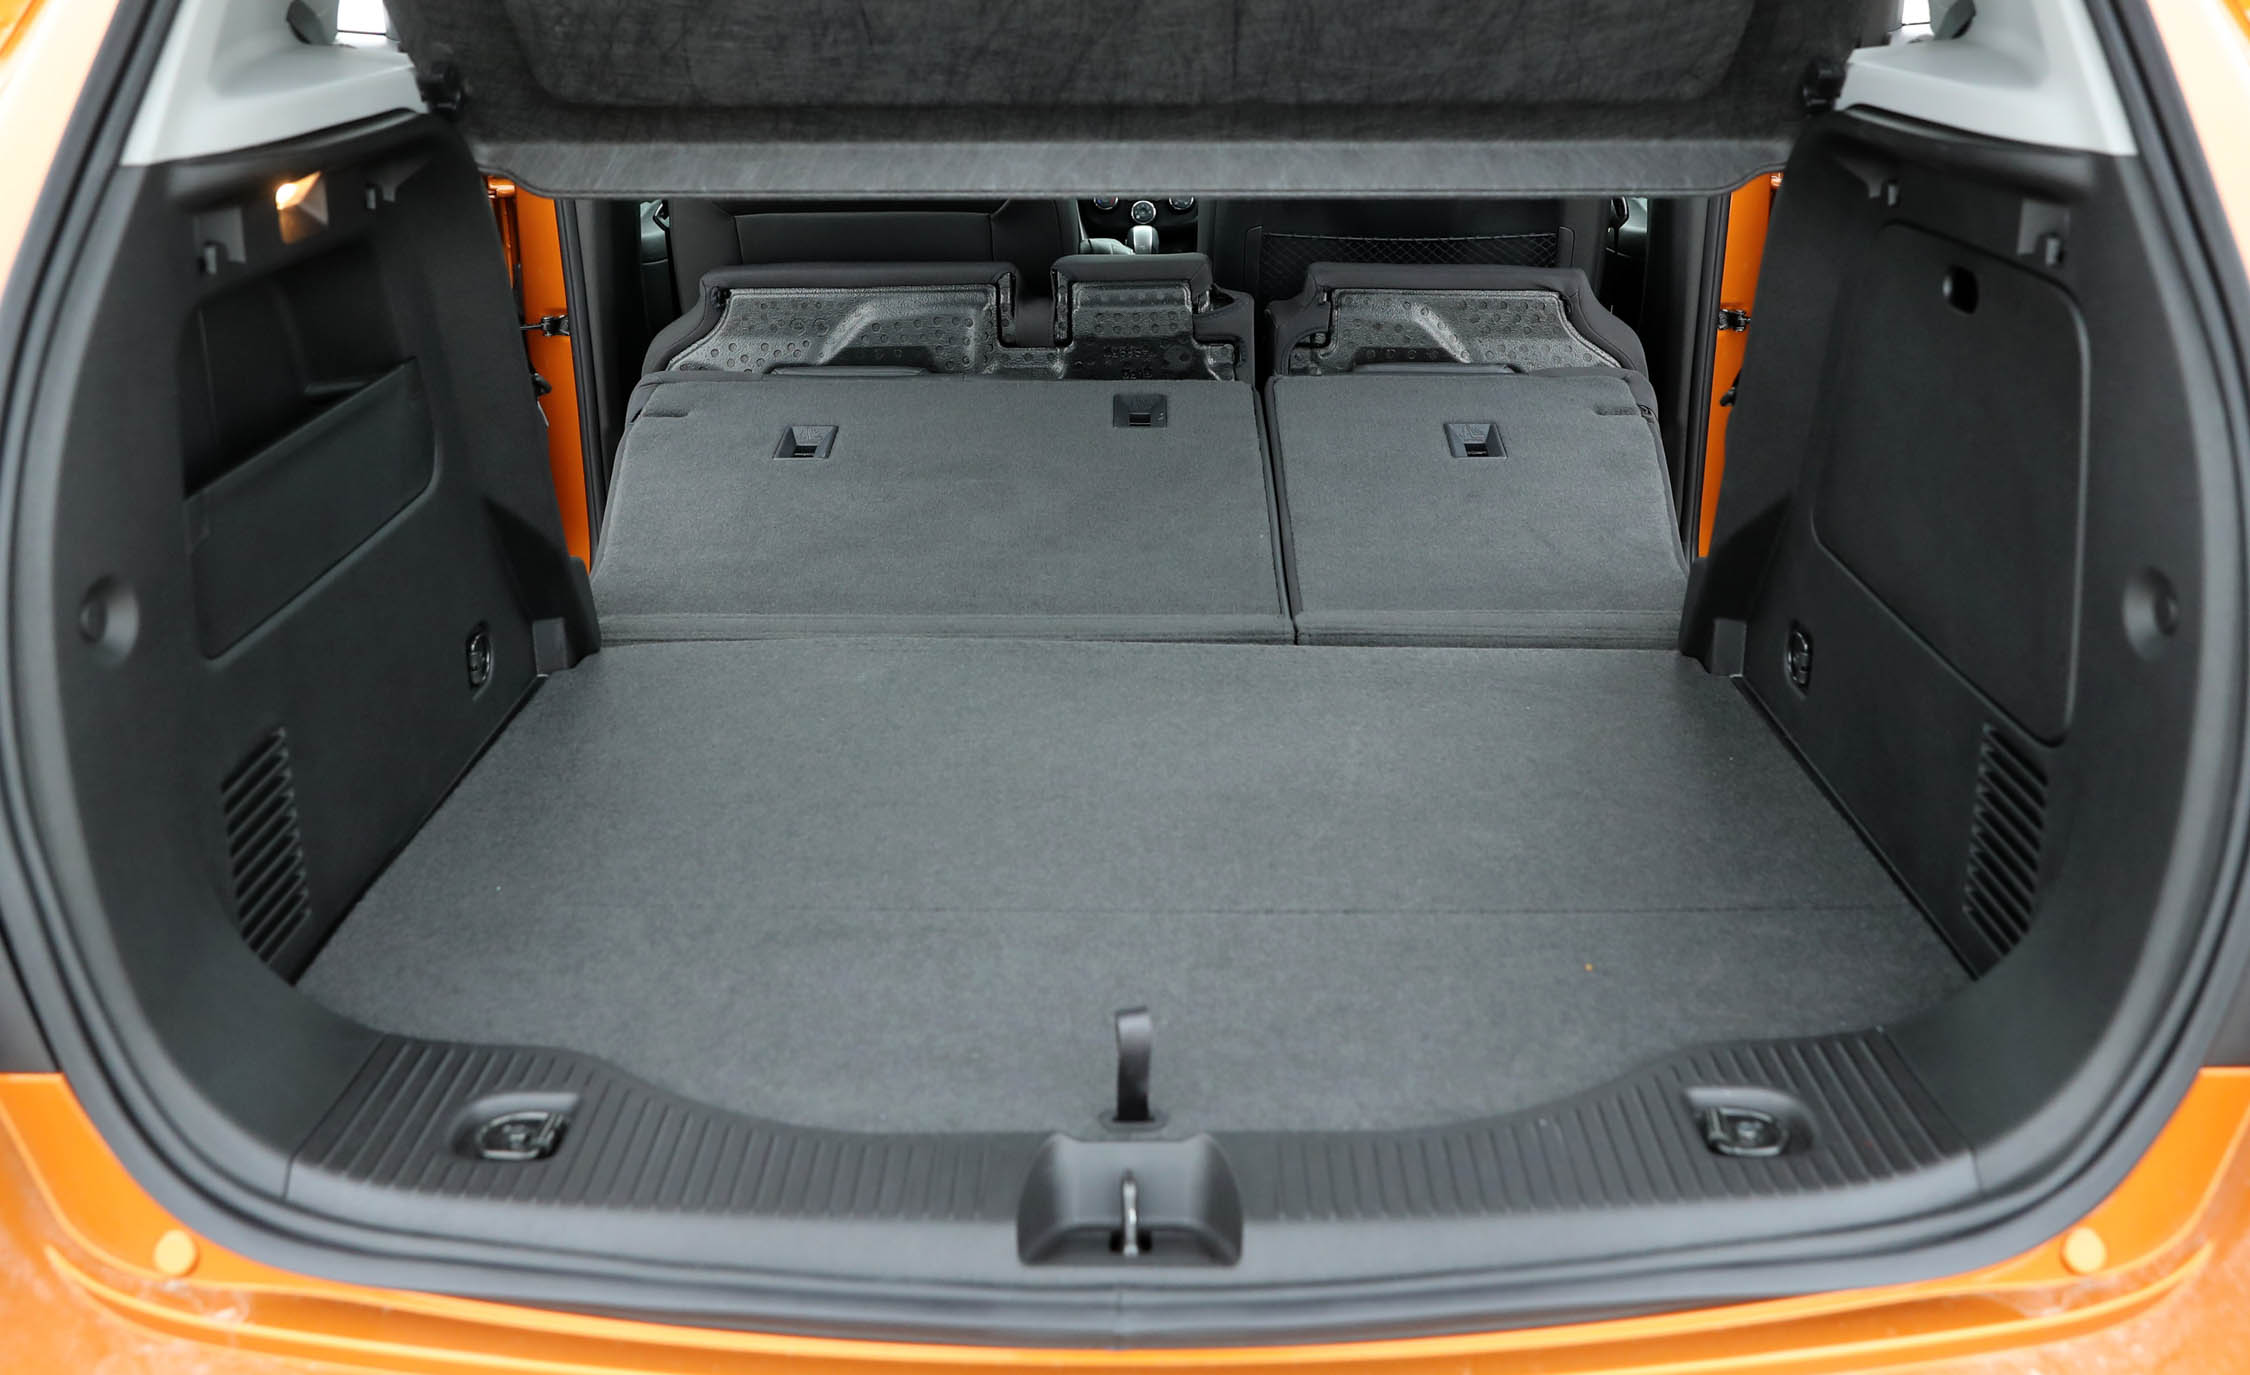 2017 Chevrolet Trax View Cargo Seats Folded (Photo 46 of 47)